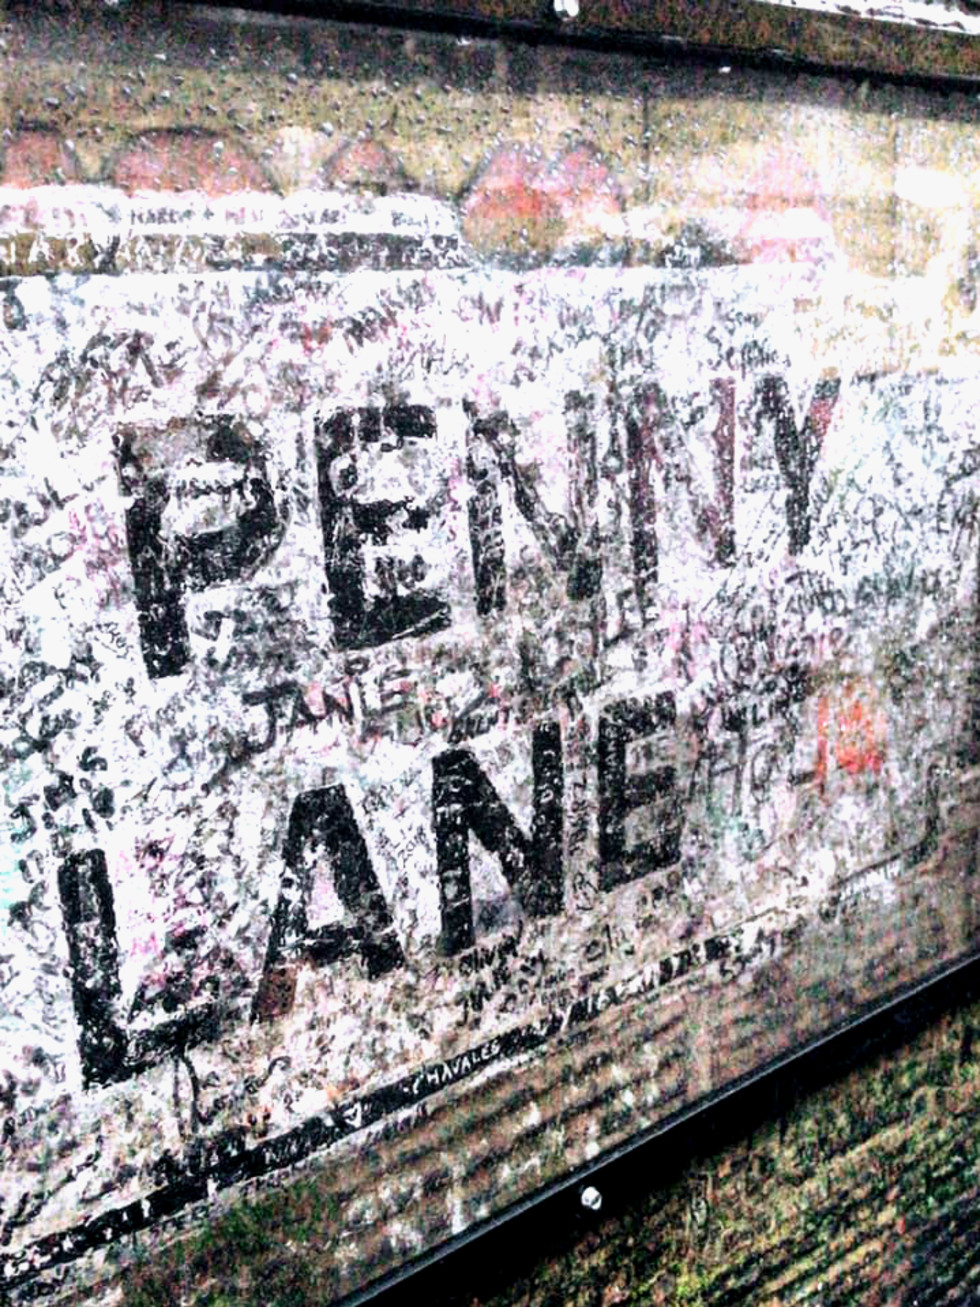 Magical Mystery Tour bus Liverpool Penny Lane